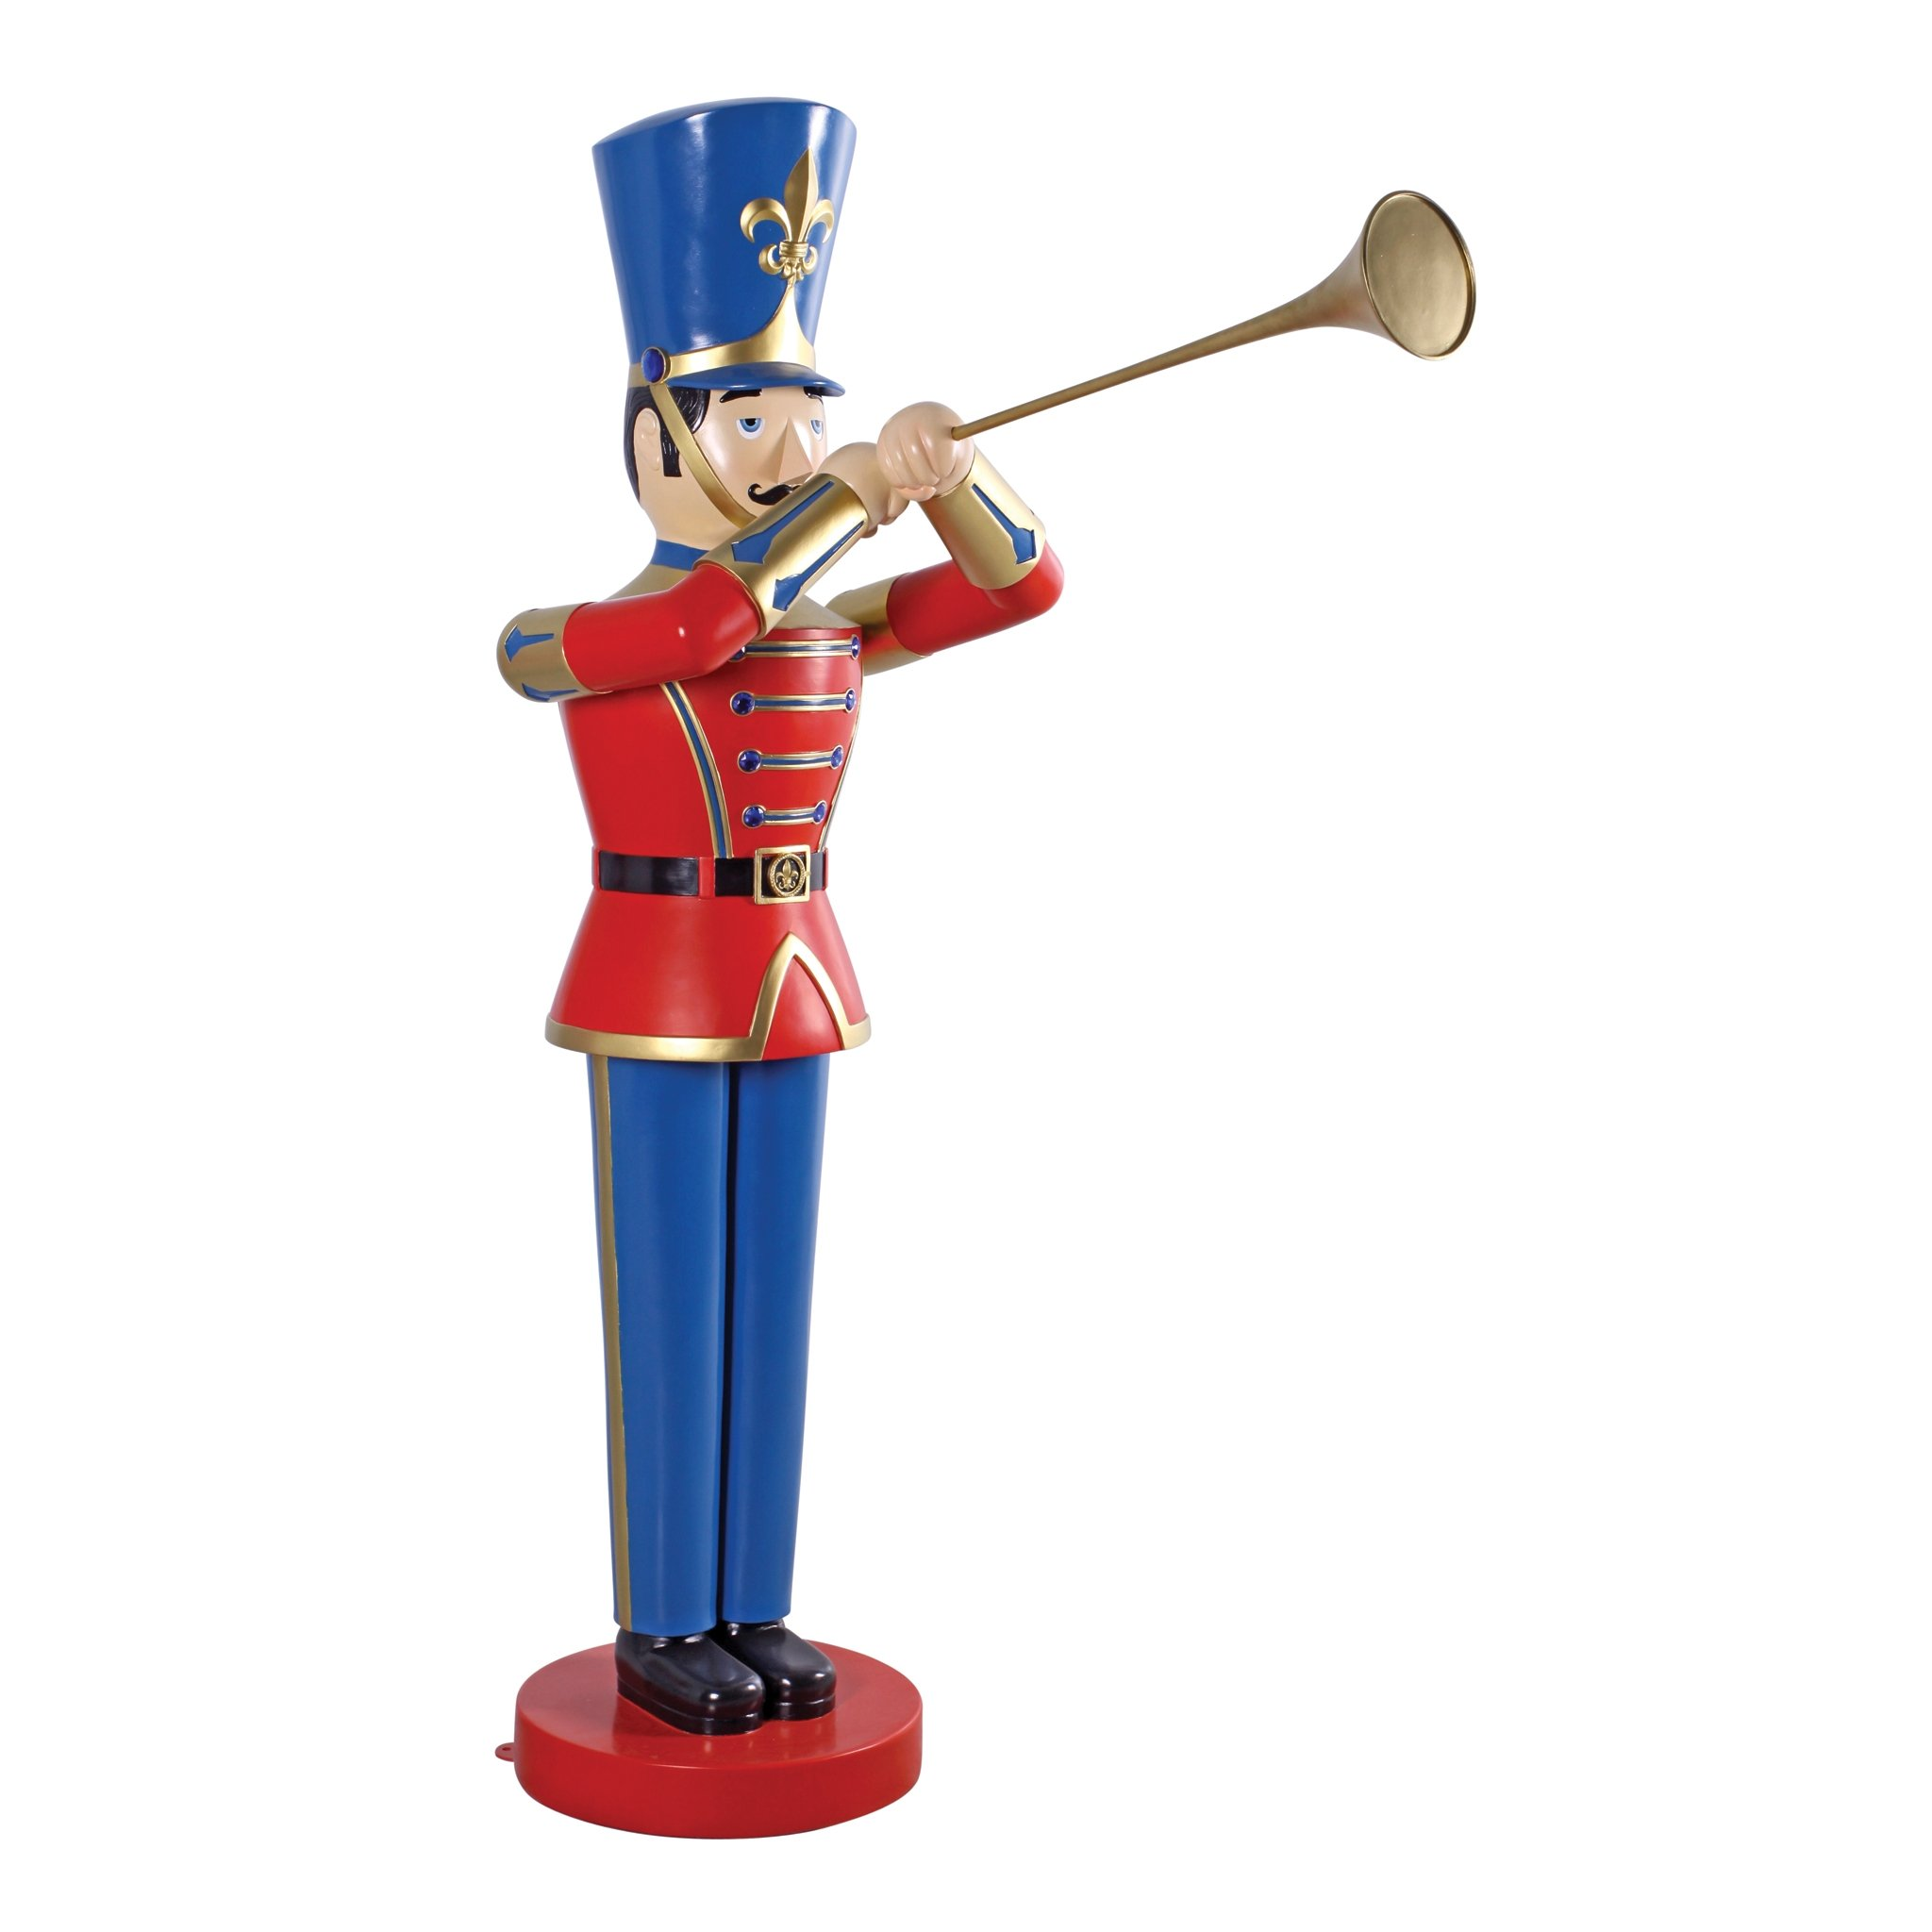 Christmas Decorations - Large 6 Foot Tall Nutcracker Ballet Trumpeting Toy Soldier Holiday Decor Statue